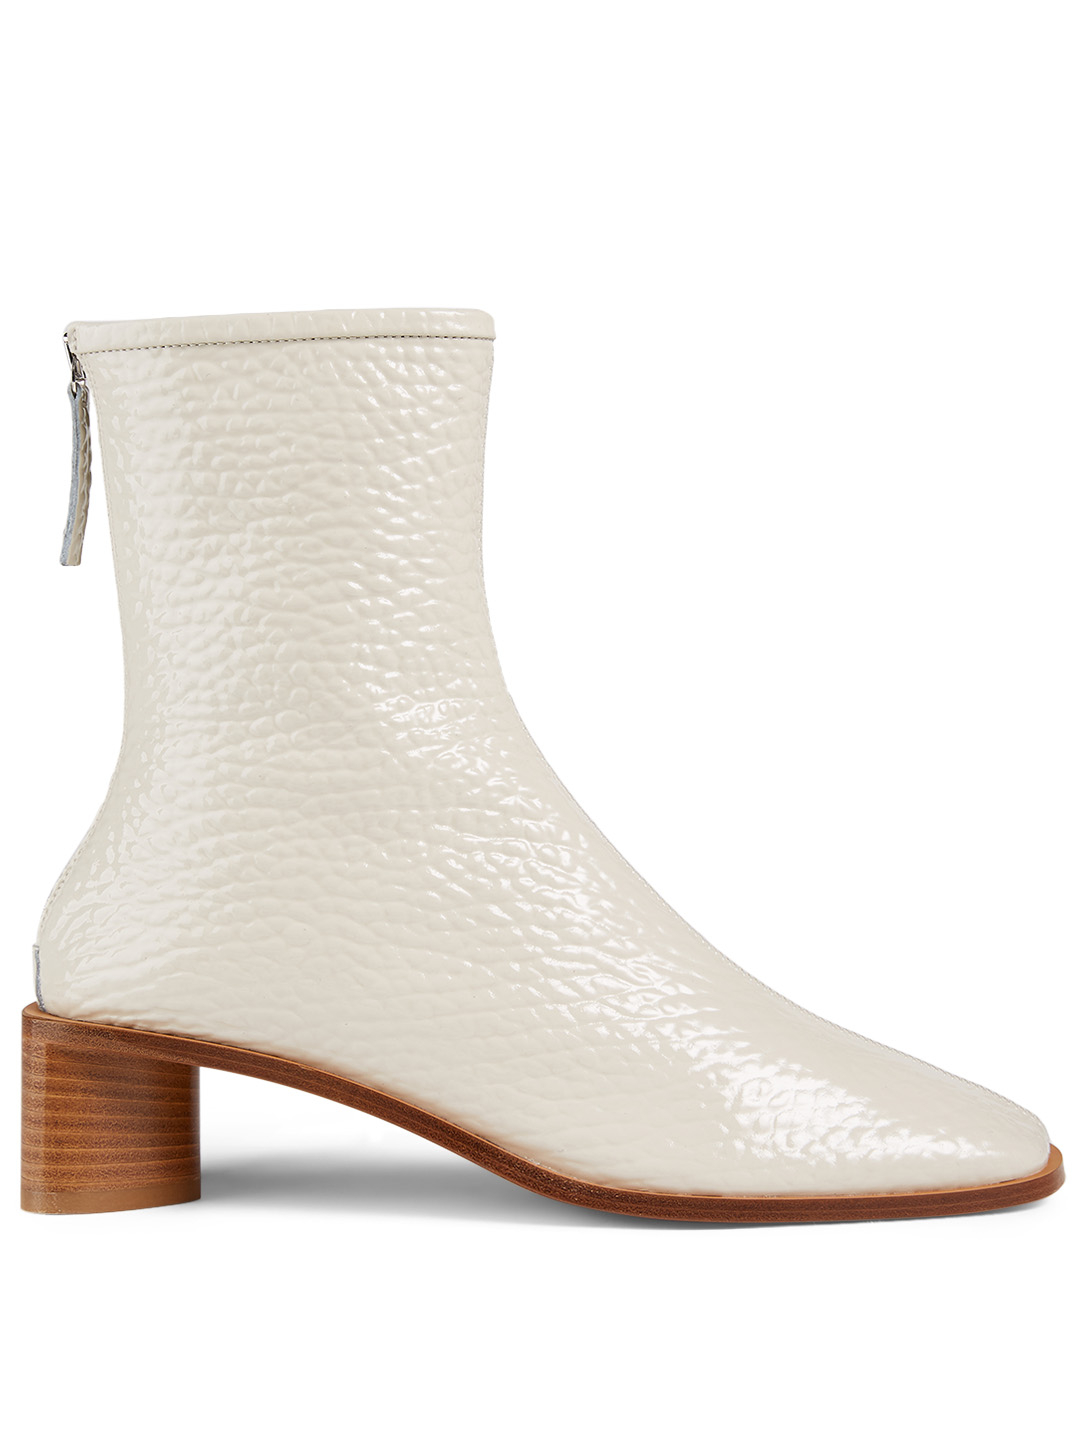 ACNE STUDIOS Bertine Leather Heeled Ankle Boots Women's Neutral